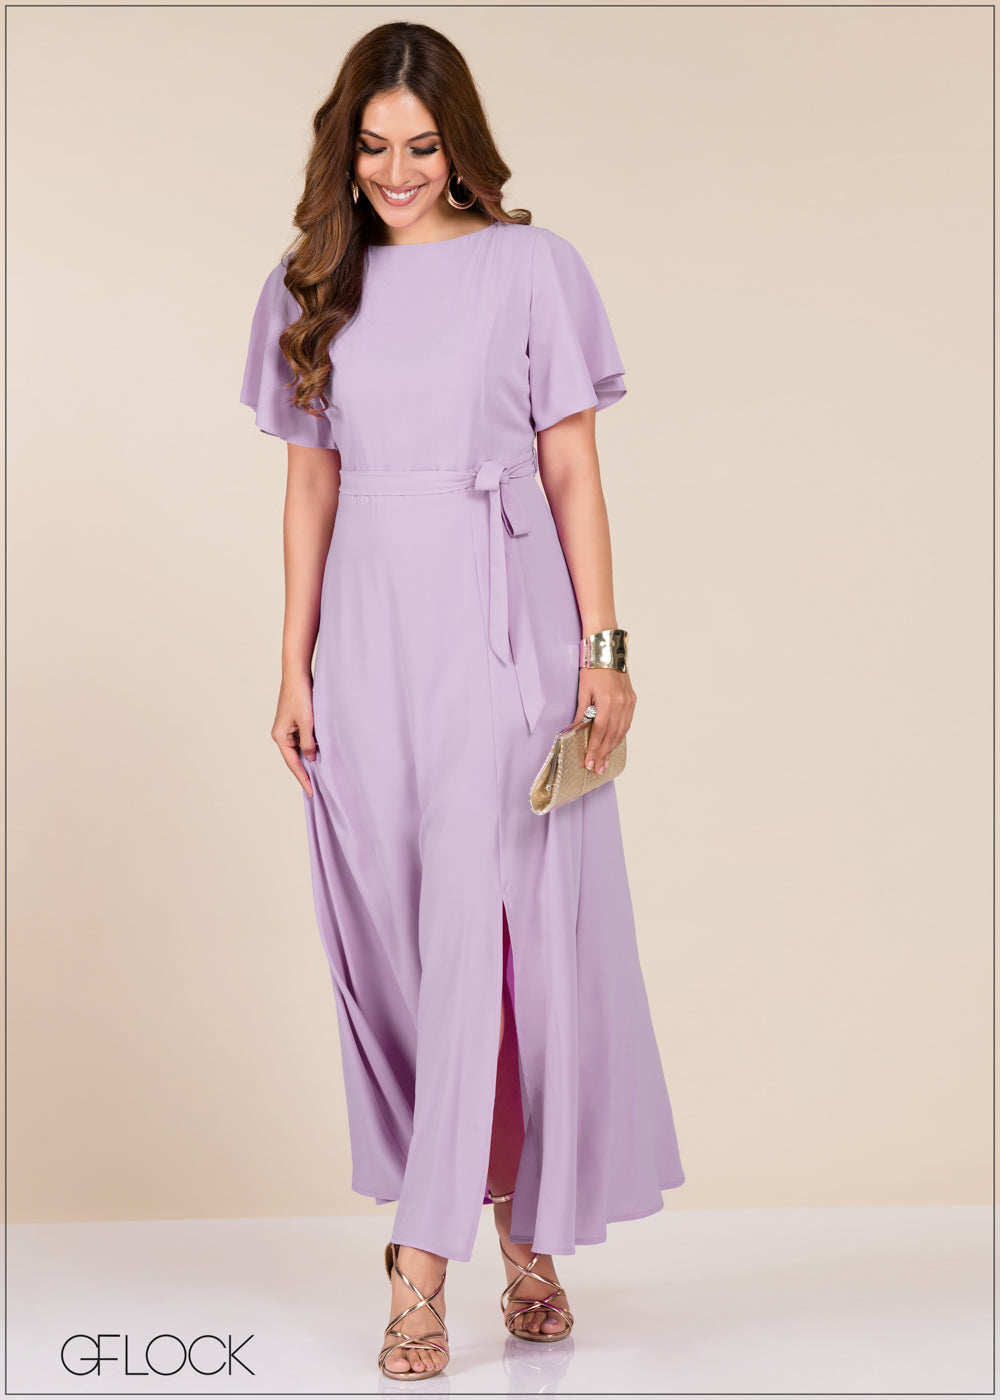 Front Slit Maxi Dress - GFLOCK.LK